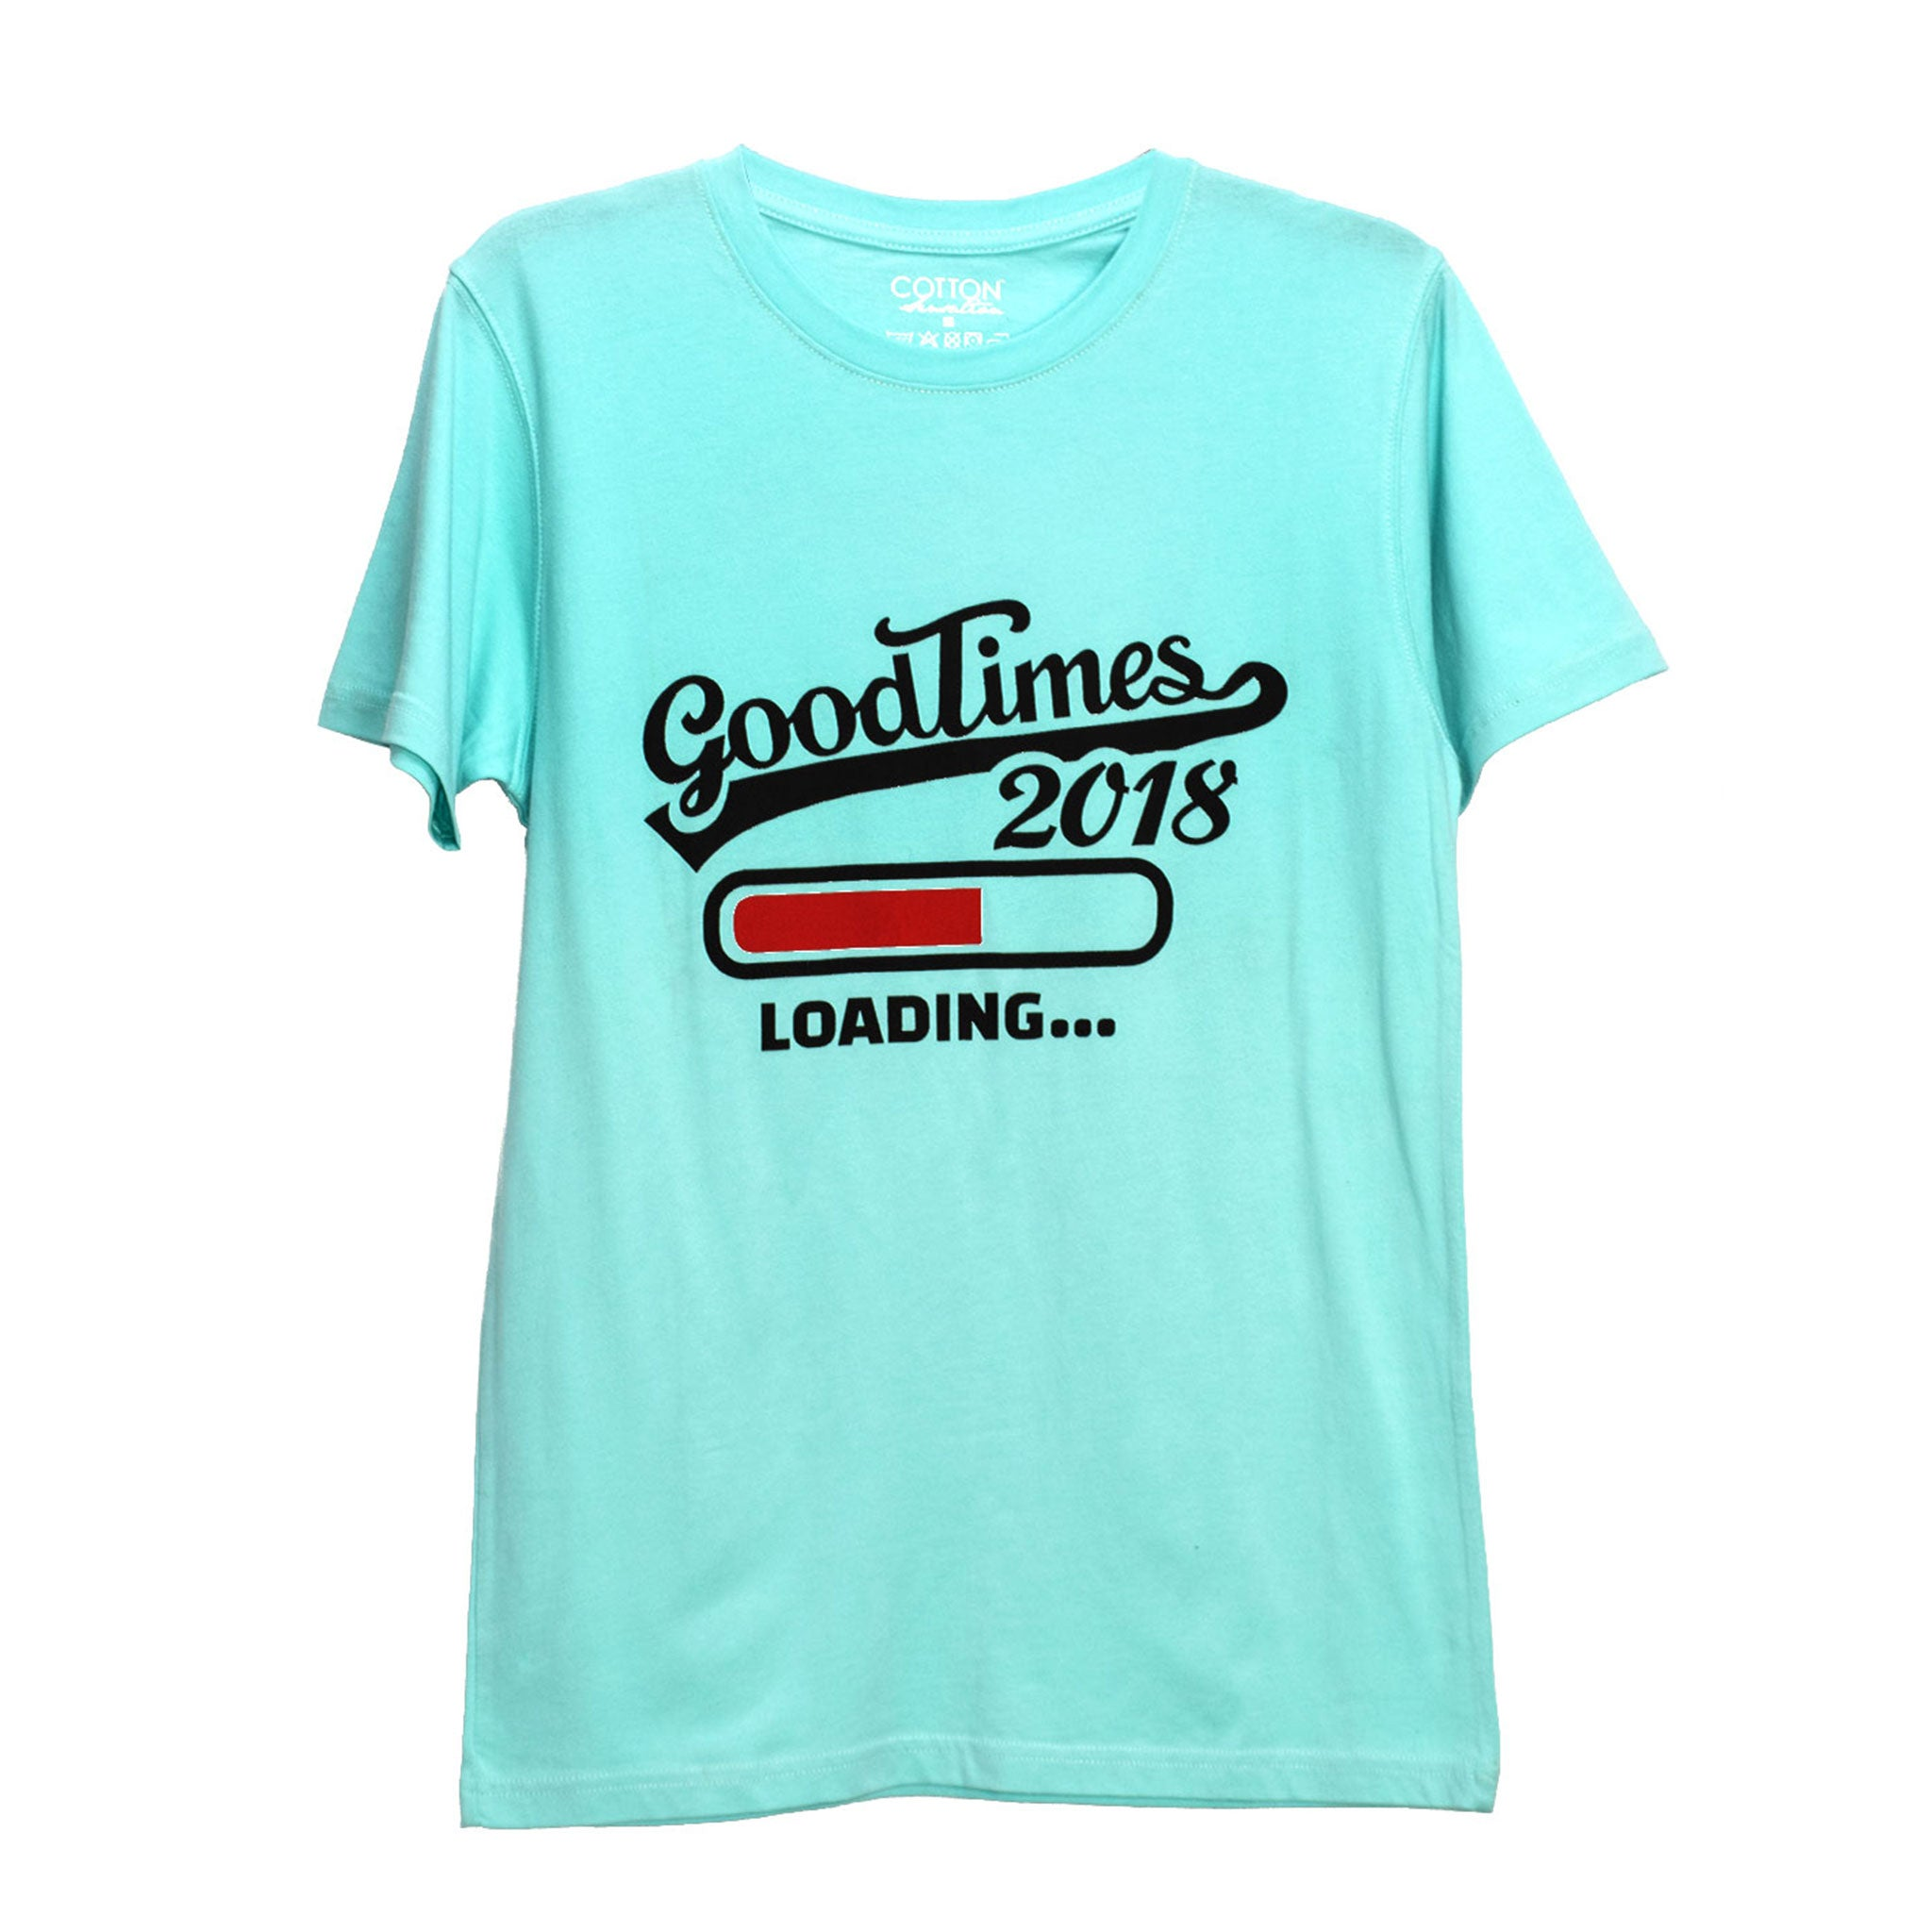 MEN'S S/S PRINTED TEE - AQUA BLUE / GOOD TIMES LOADING